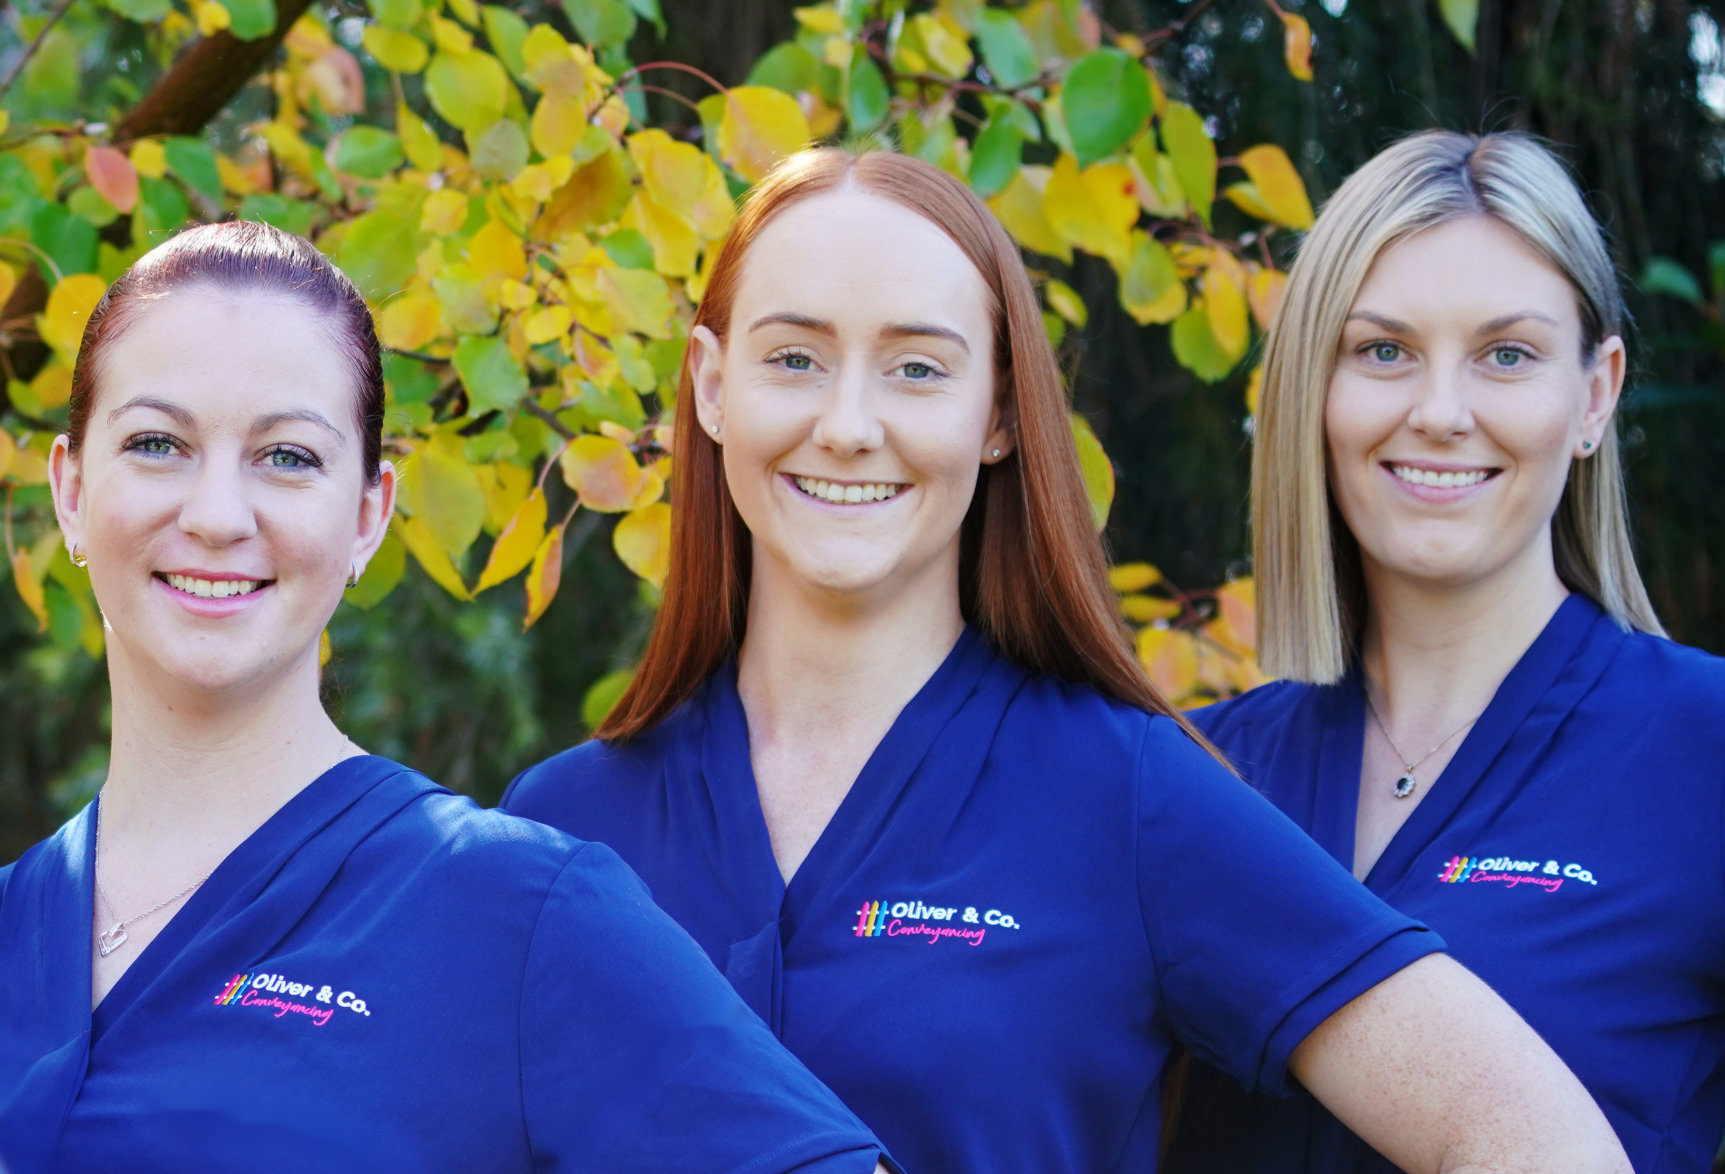 Oliver & Co. Conveyancing, Cessnock - A photo of the team